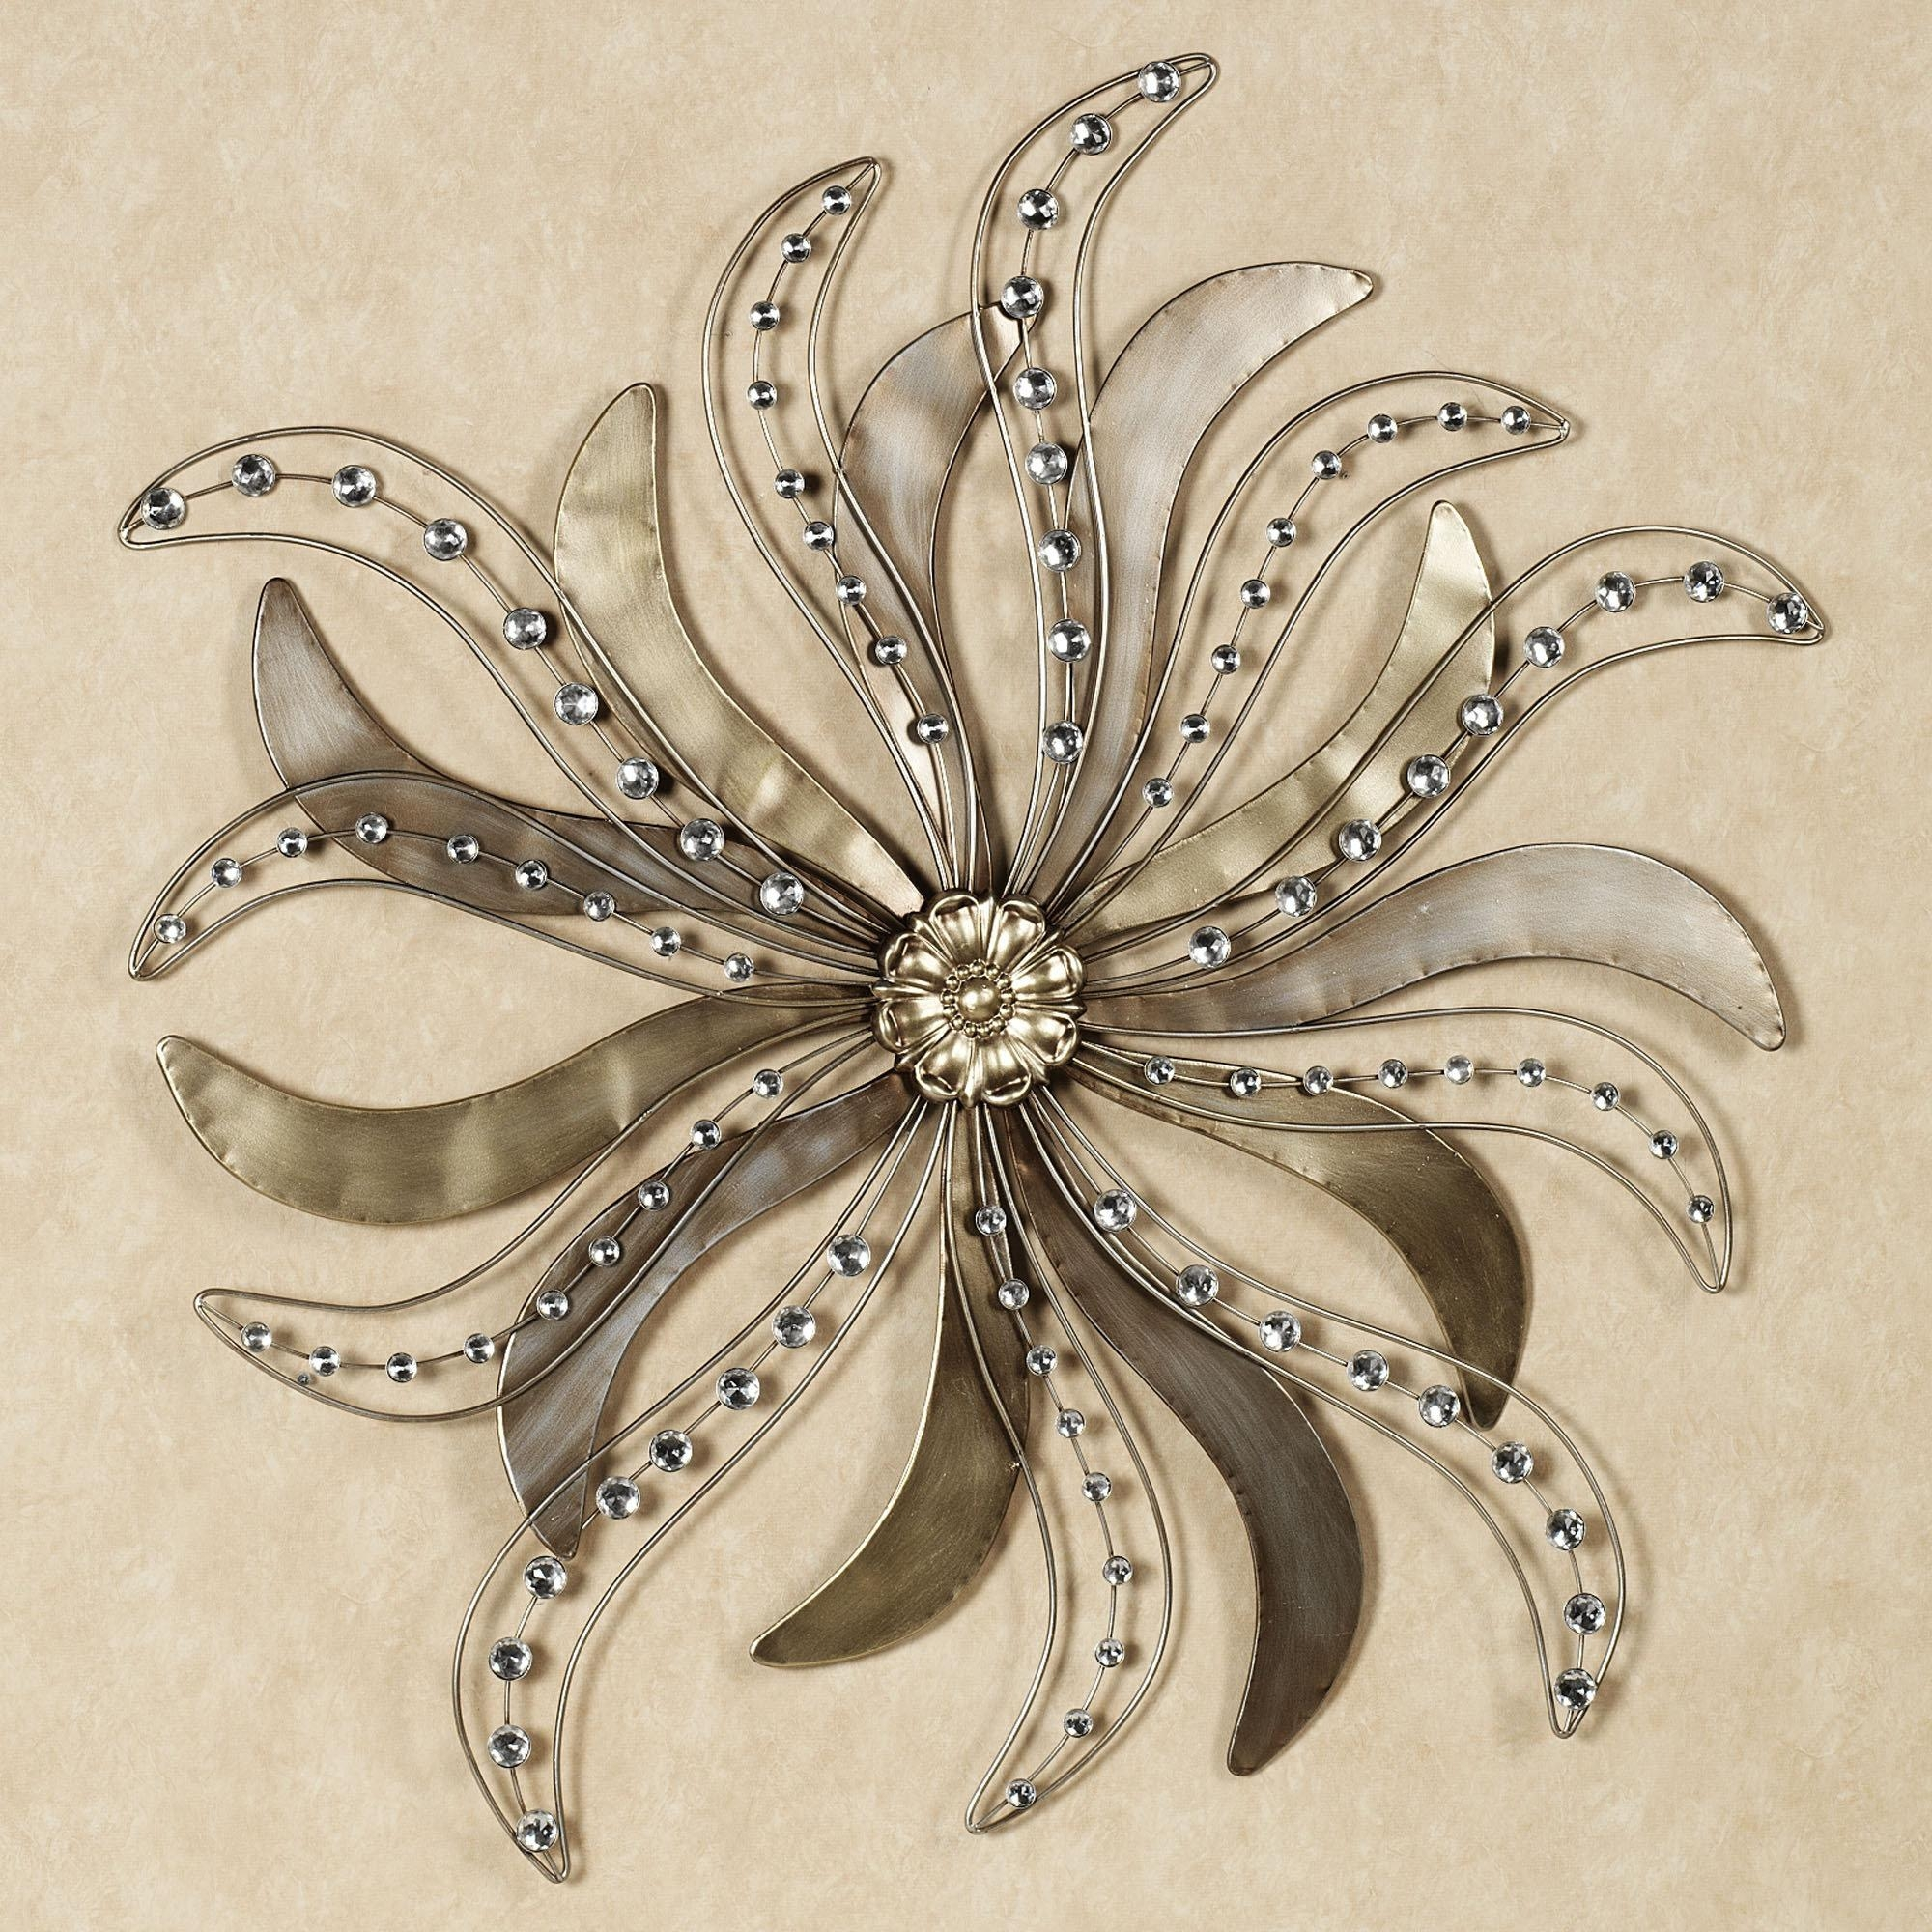 Wonderful Flower Metal Wall Art Decoration 111 Verona Flowers Pertaining To Silver Metal Wall Art Flowers (View 5 of 20)